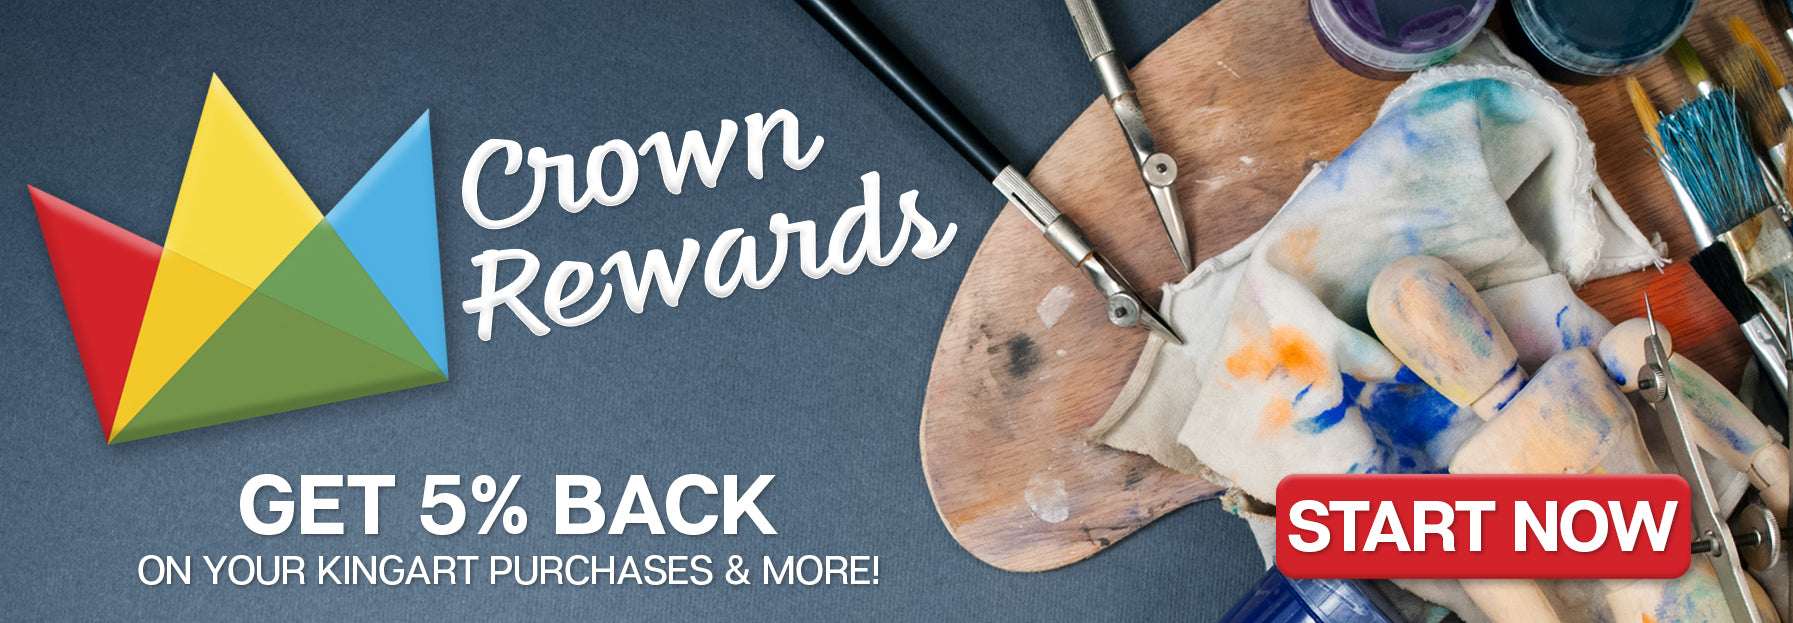 Crown Rewards. Get 5% back on your kingart purchases and more! Start now